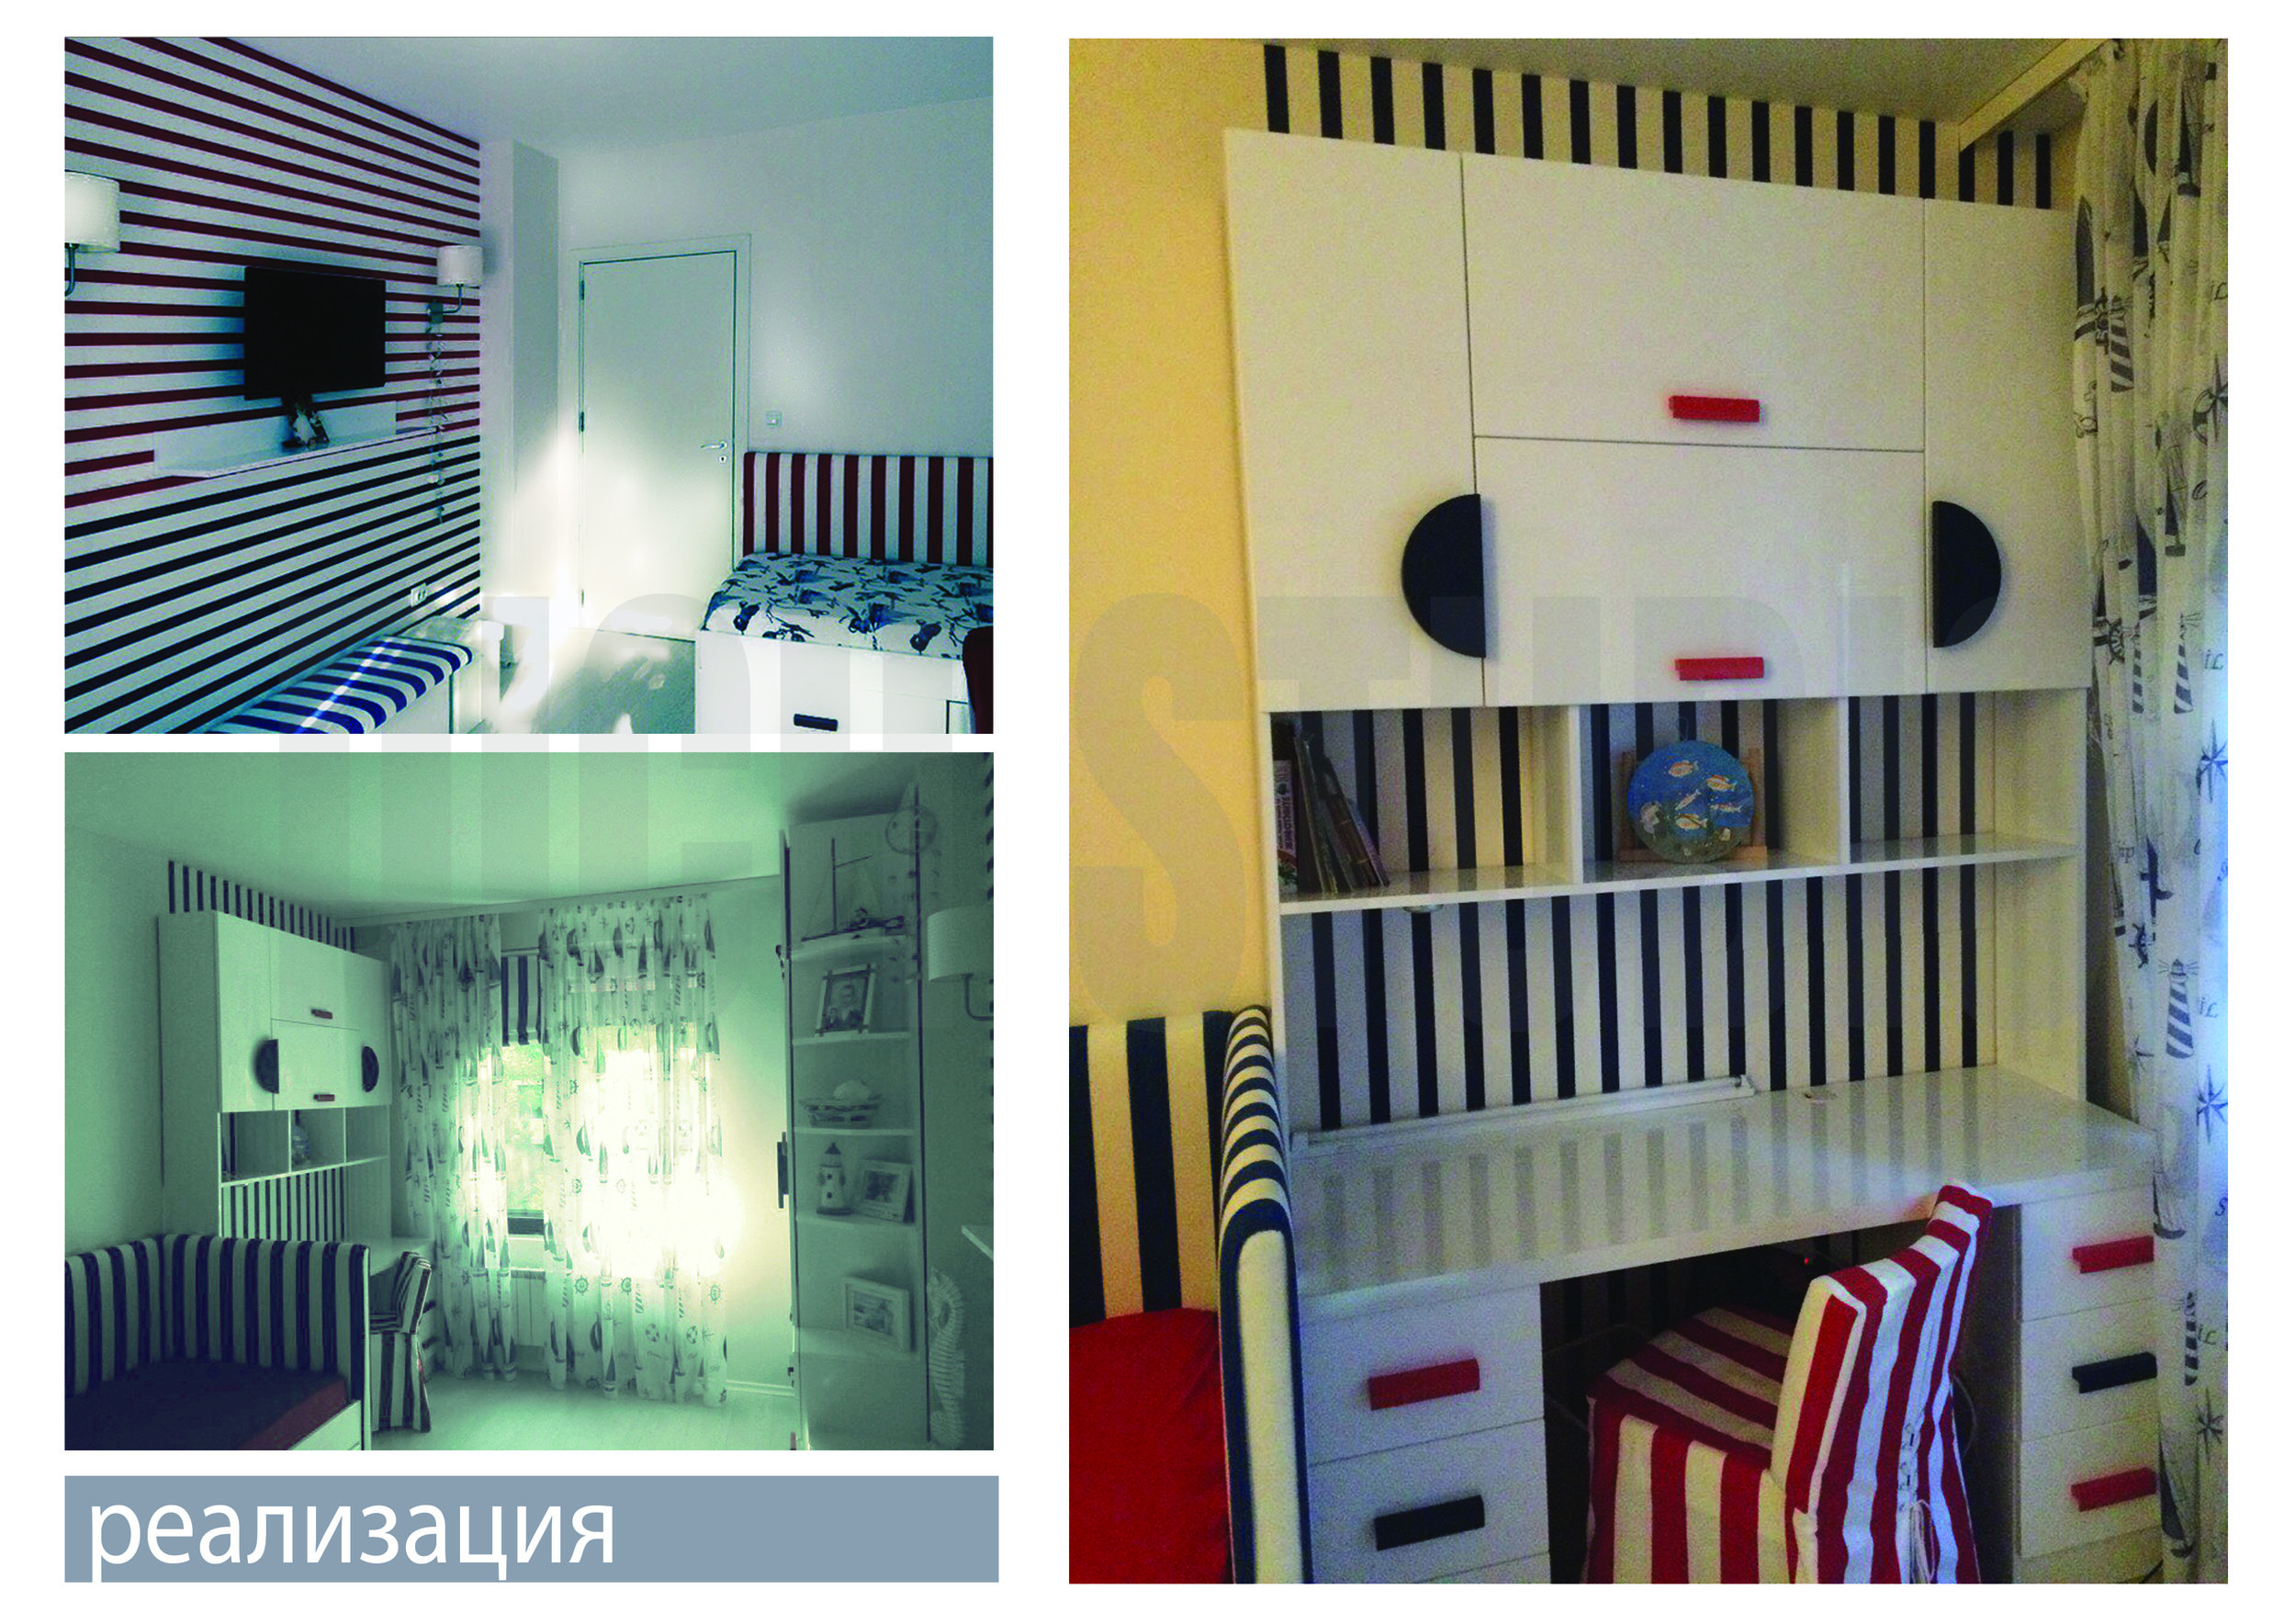 Interior design for a small room for kids, Vitosha, Sofia